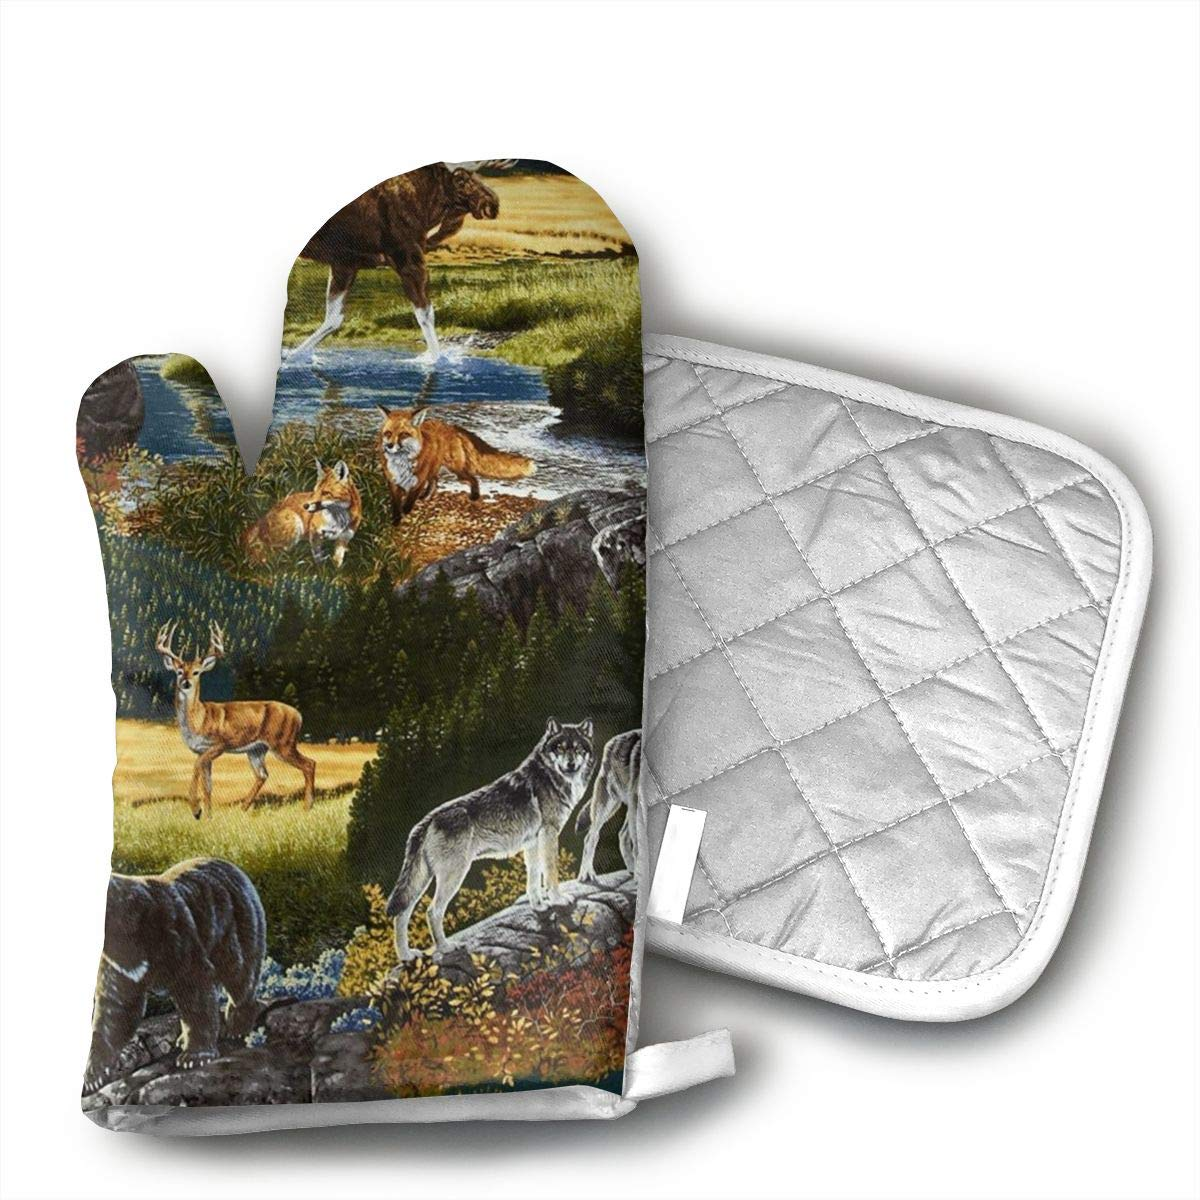 Mountain Wildlife Nature Bear Moose Oven Mitts and Pot Holders Kitchen Mitten Cooking Gloves,Cooking, Baking, BBQ.